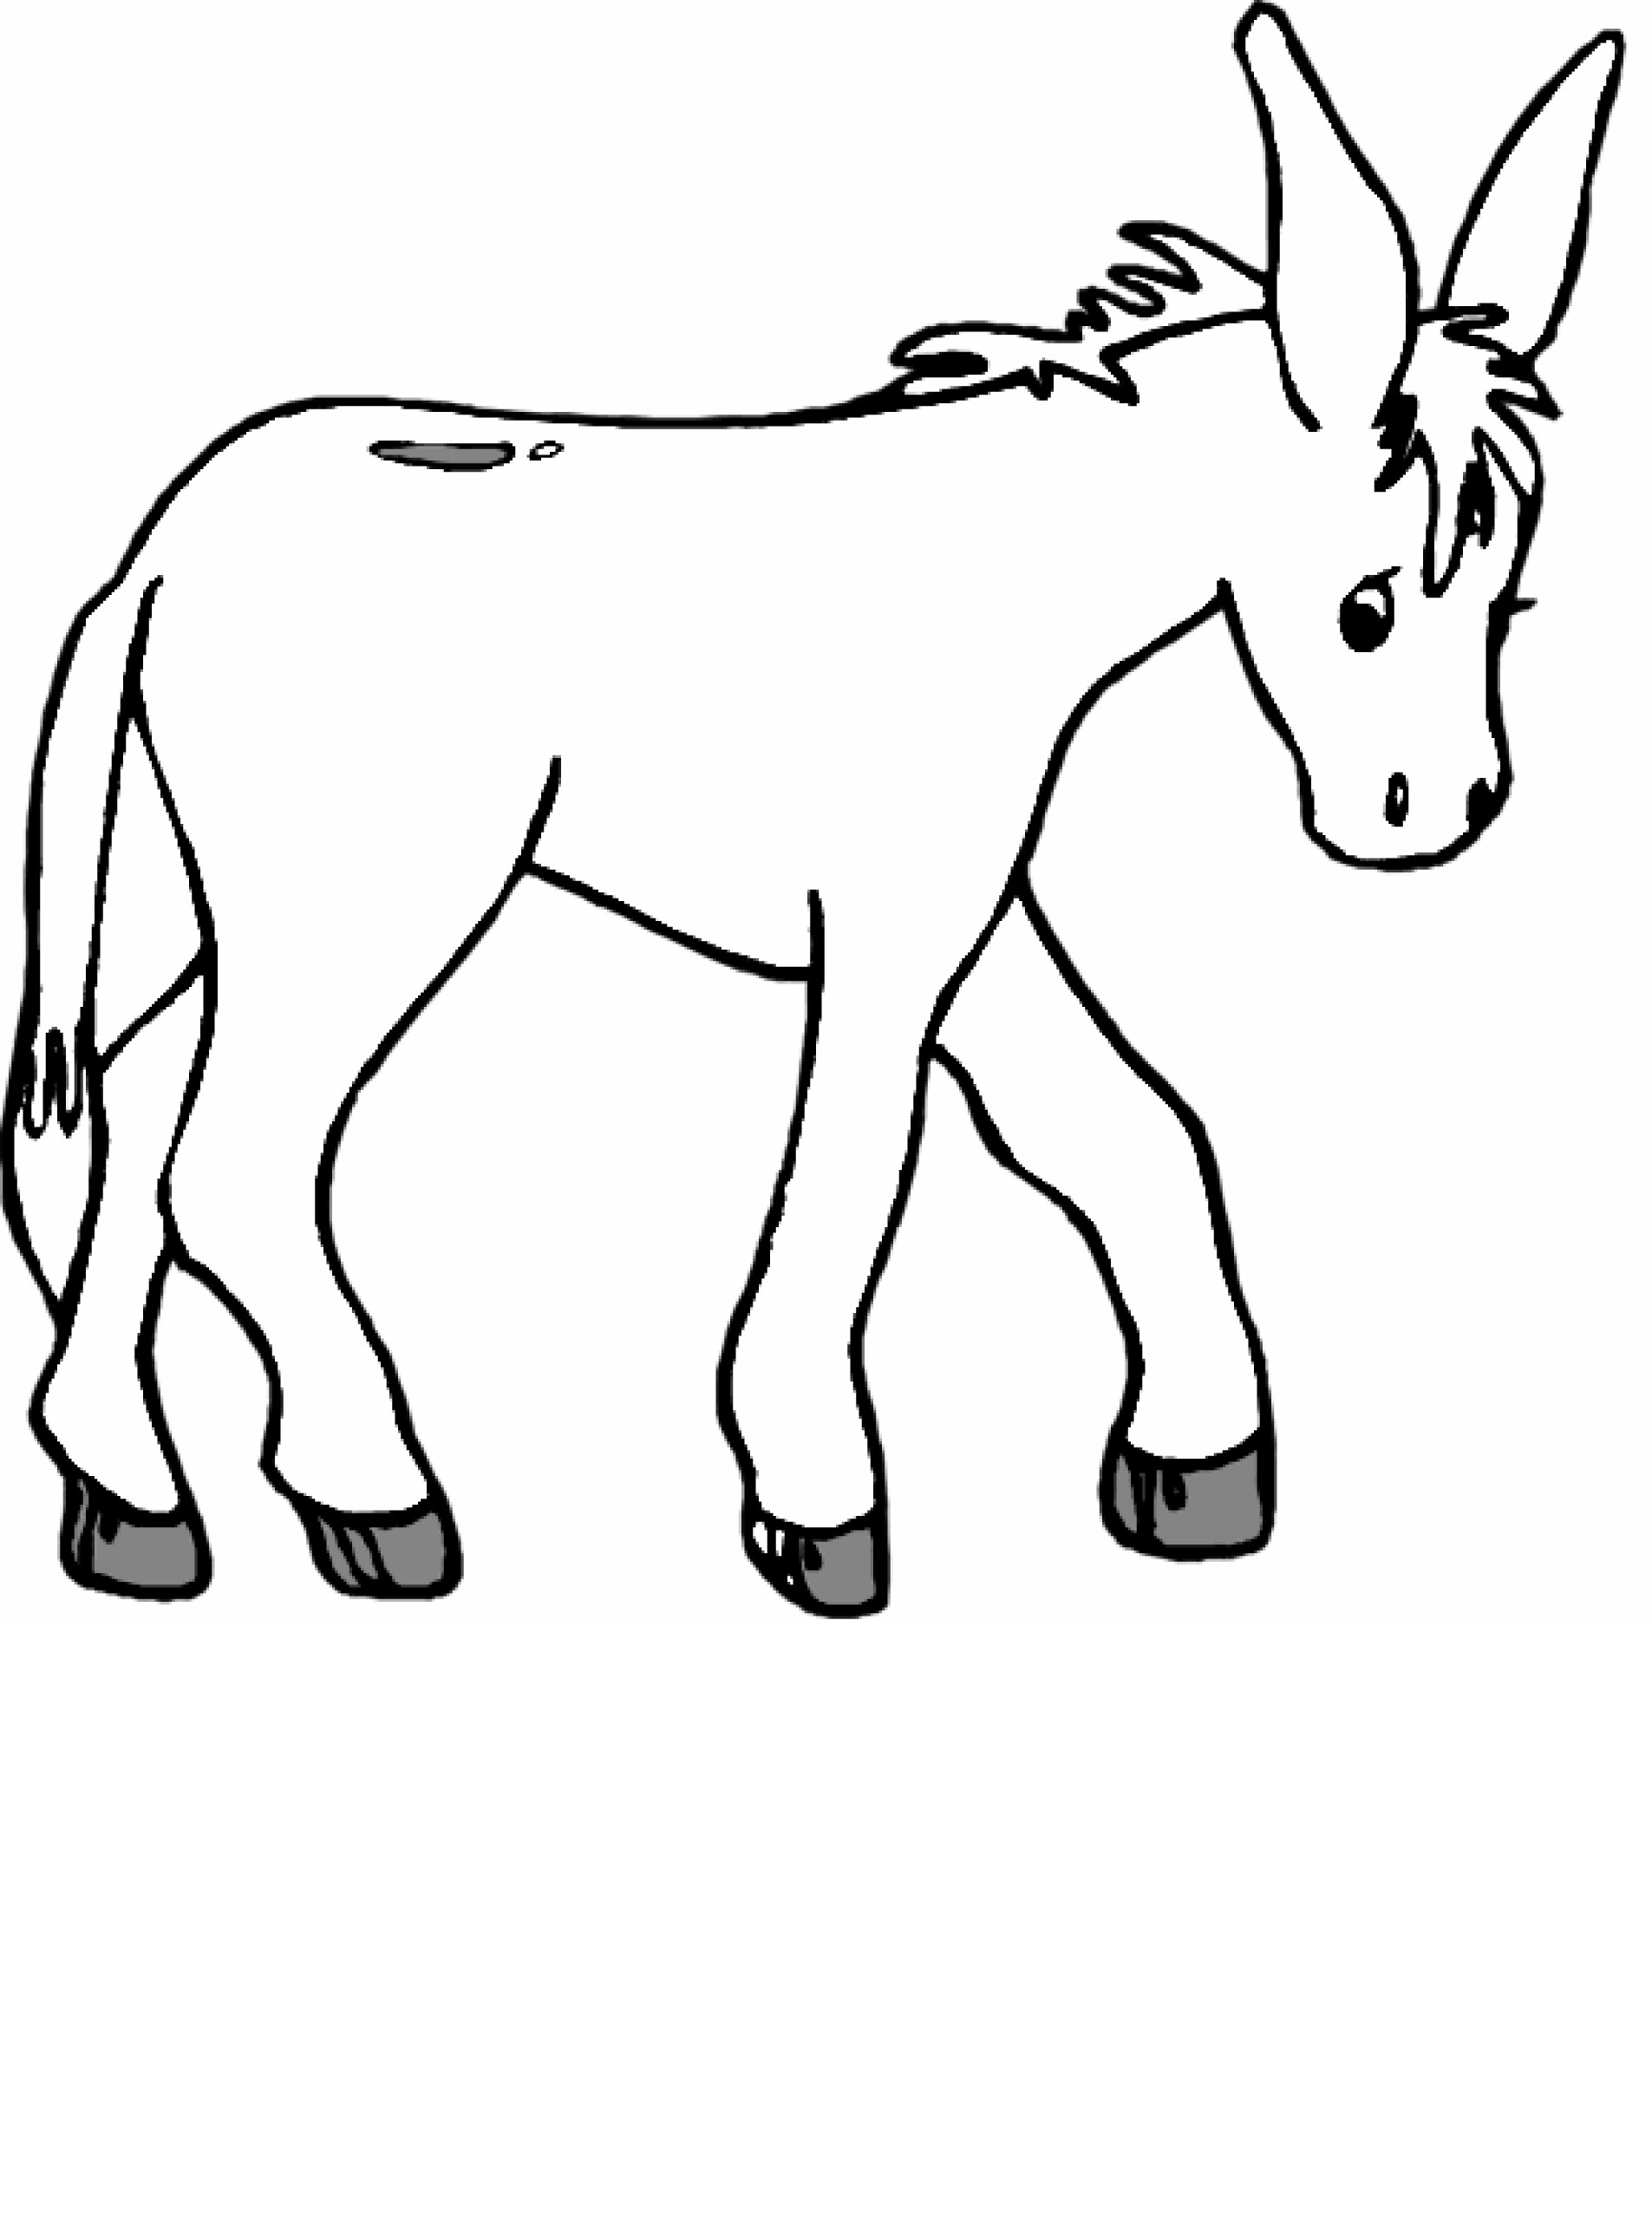 donkey pictures to print free printable donkey coloring pages for kids to print pictures donkey